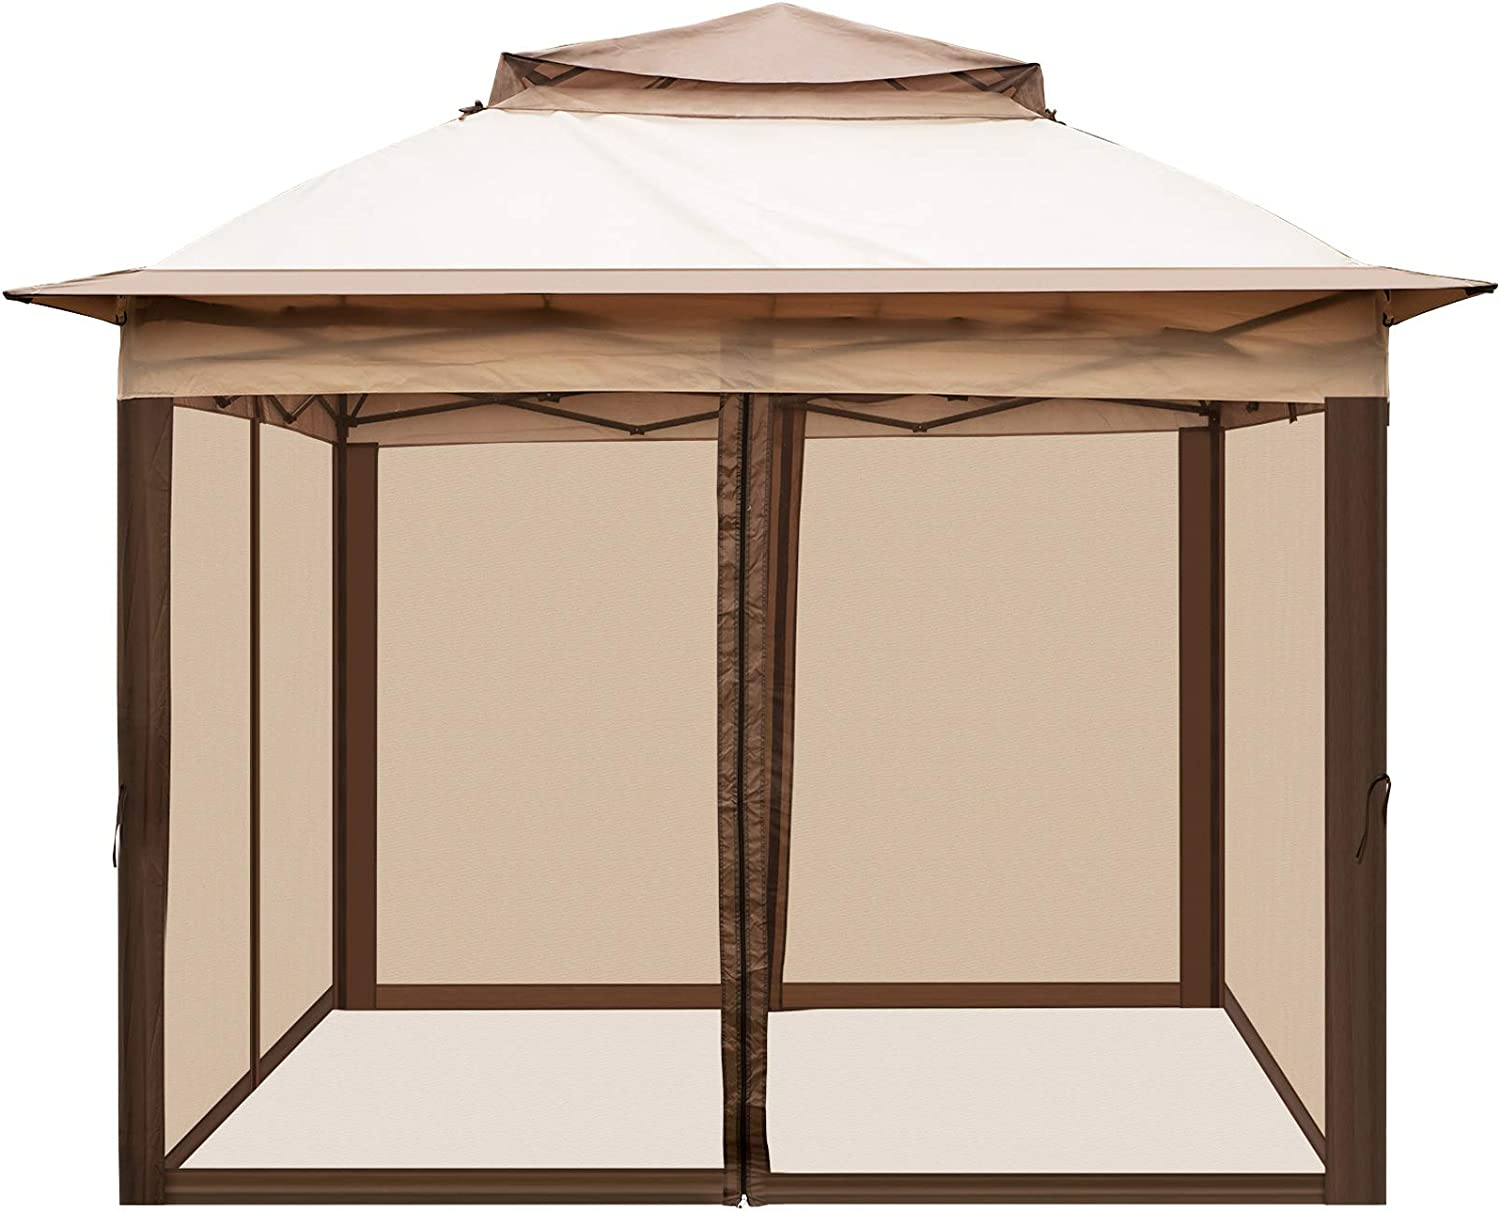 LOVSHARE Pop Up Gazebo 11' x 11' with Netting - Outdoor Canopy Gazebo with 4 Sandbags - Patio Gazebo with 121 Square Feet of Shade for Backyard, Outdoor, Patio and Lawn